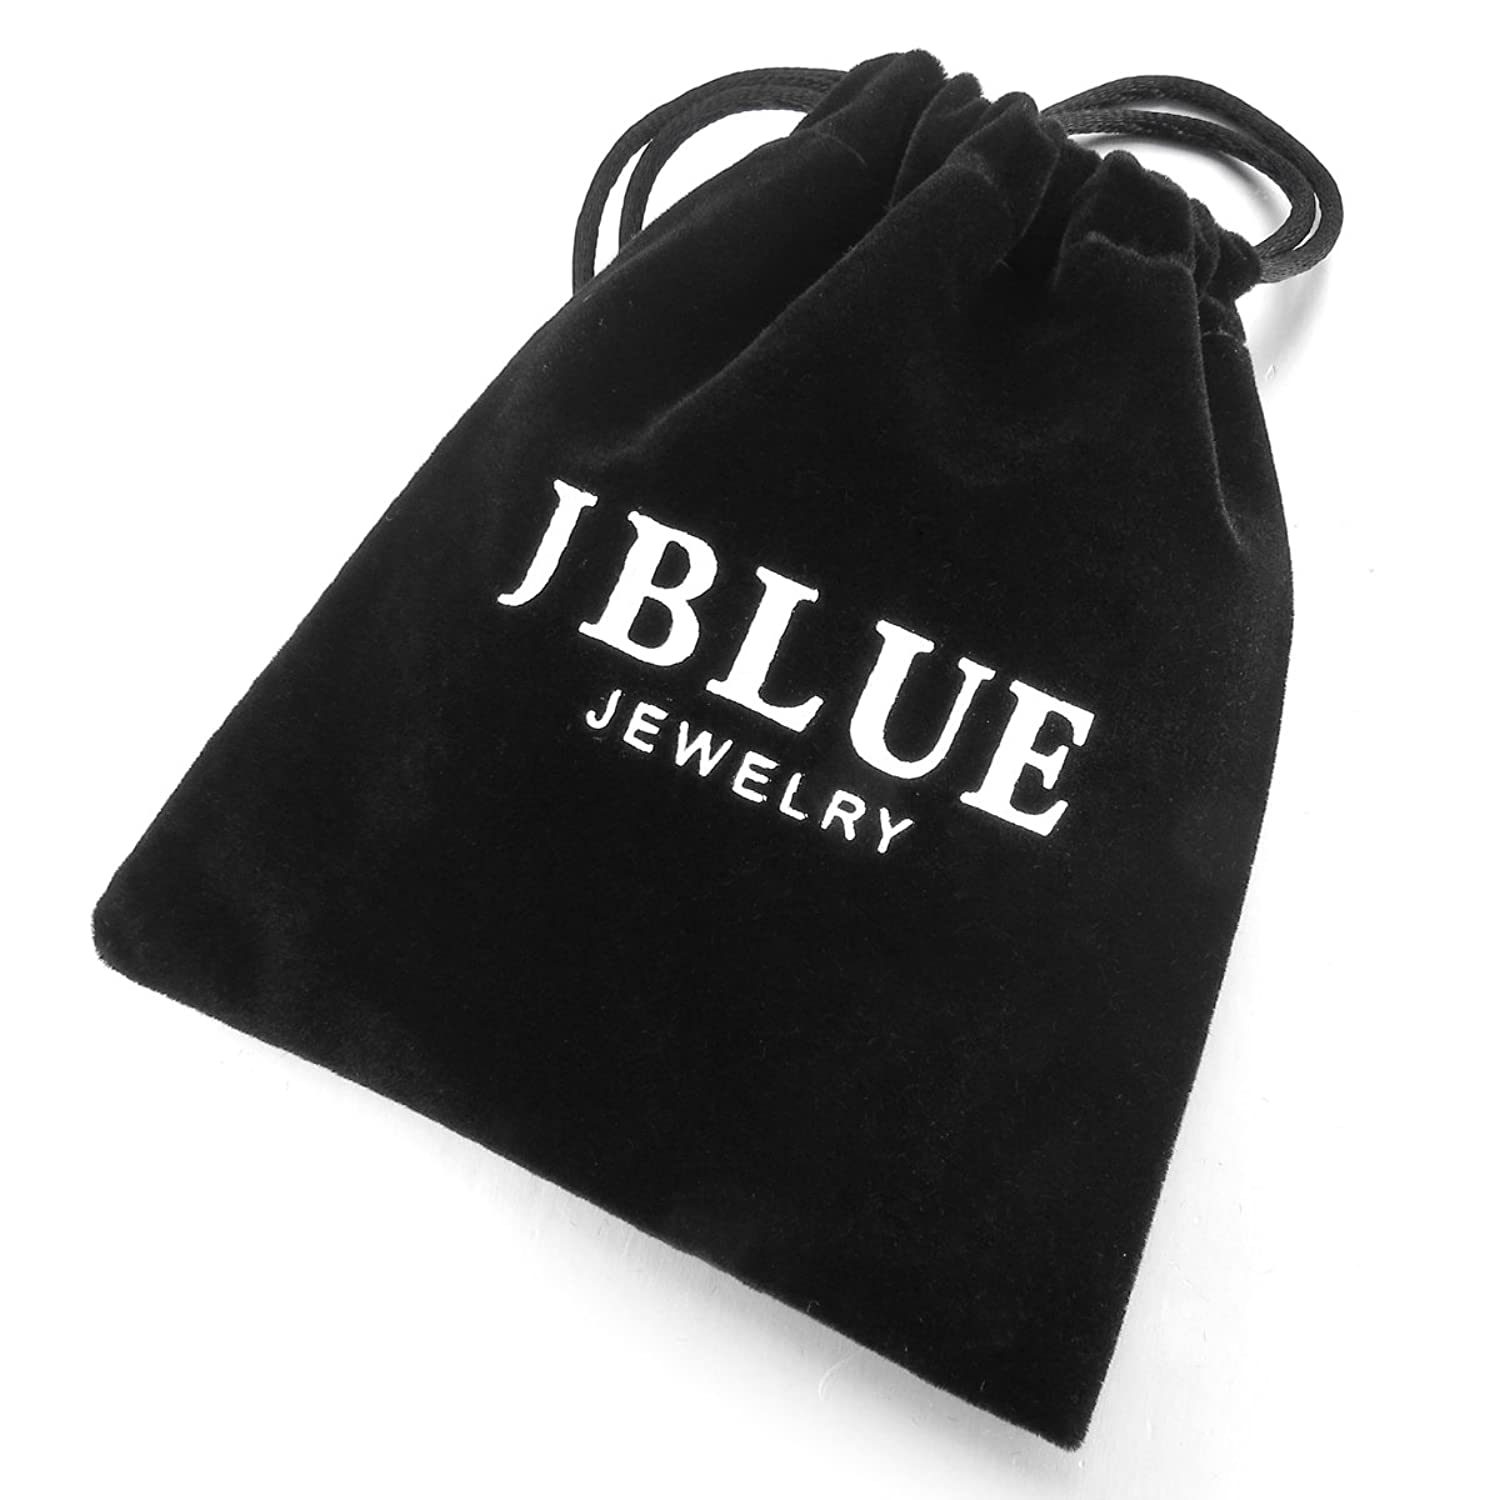 JBlue Jewelry Men's Stainless Steel Eternity Ring Band CZ Silver Stripe Charm Elegant Classic Wedding Polished (with Gift Bag)